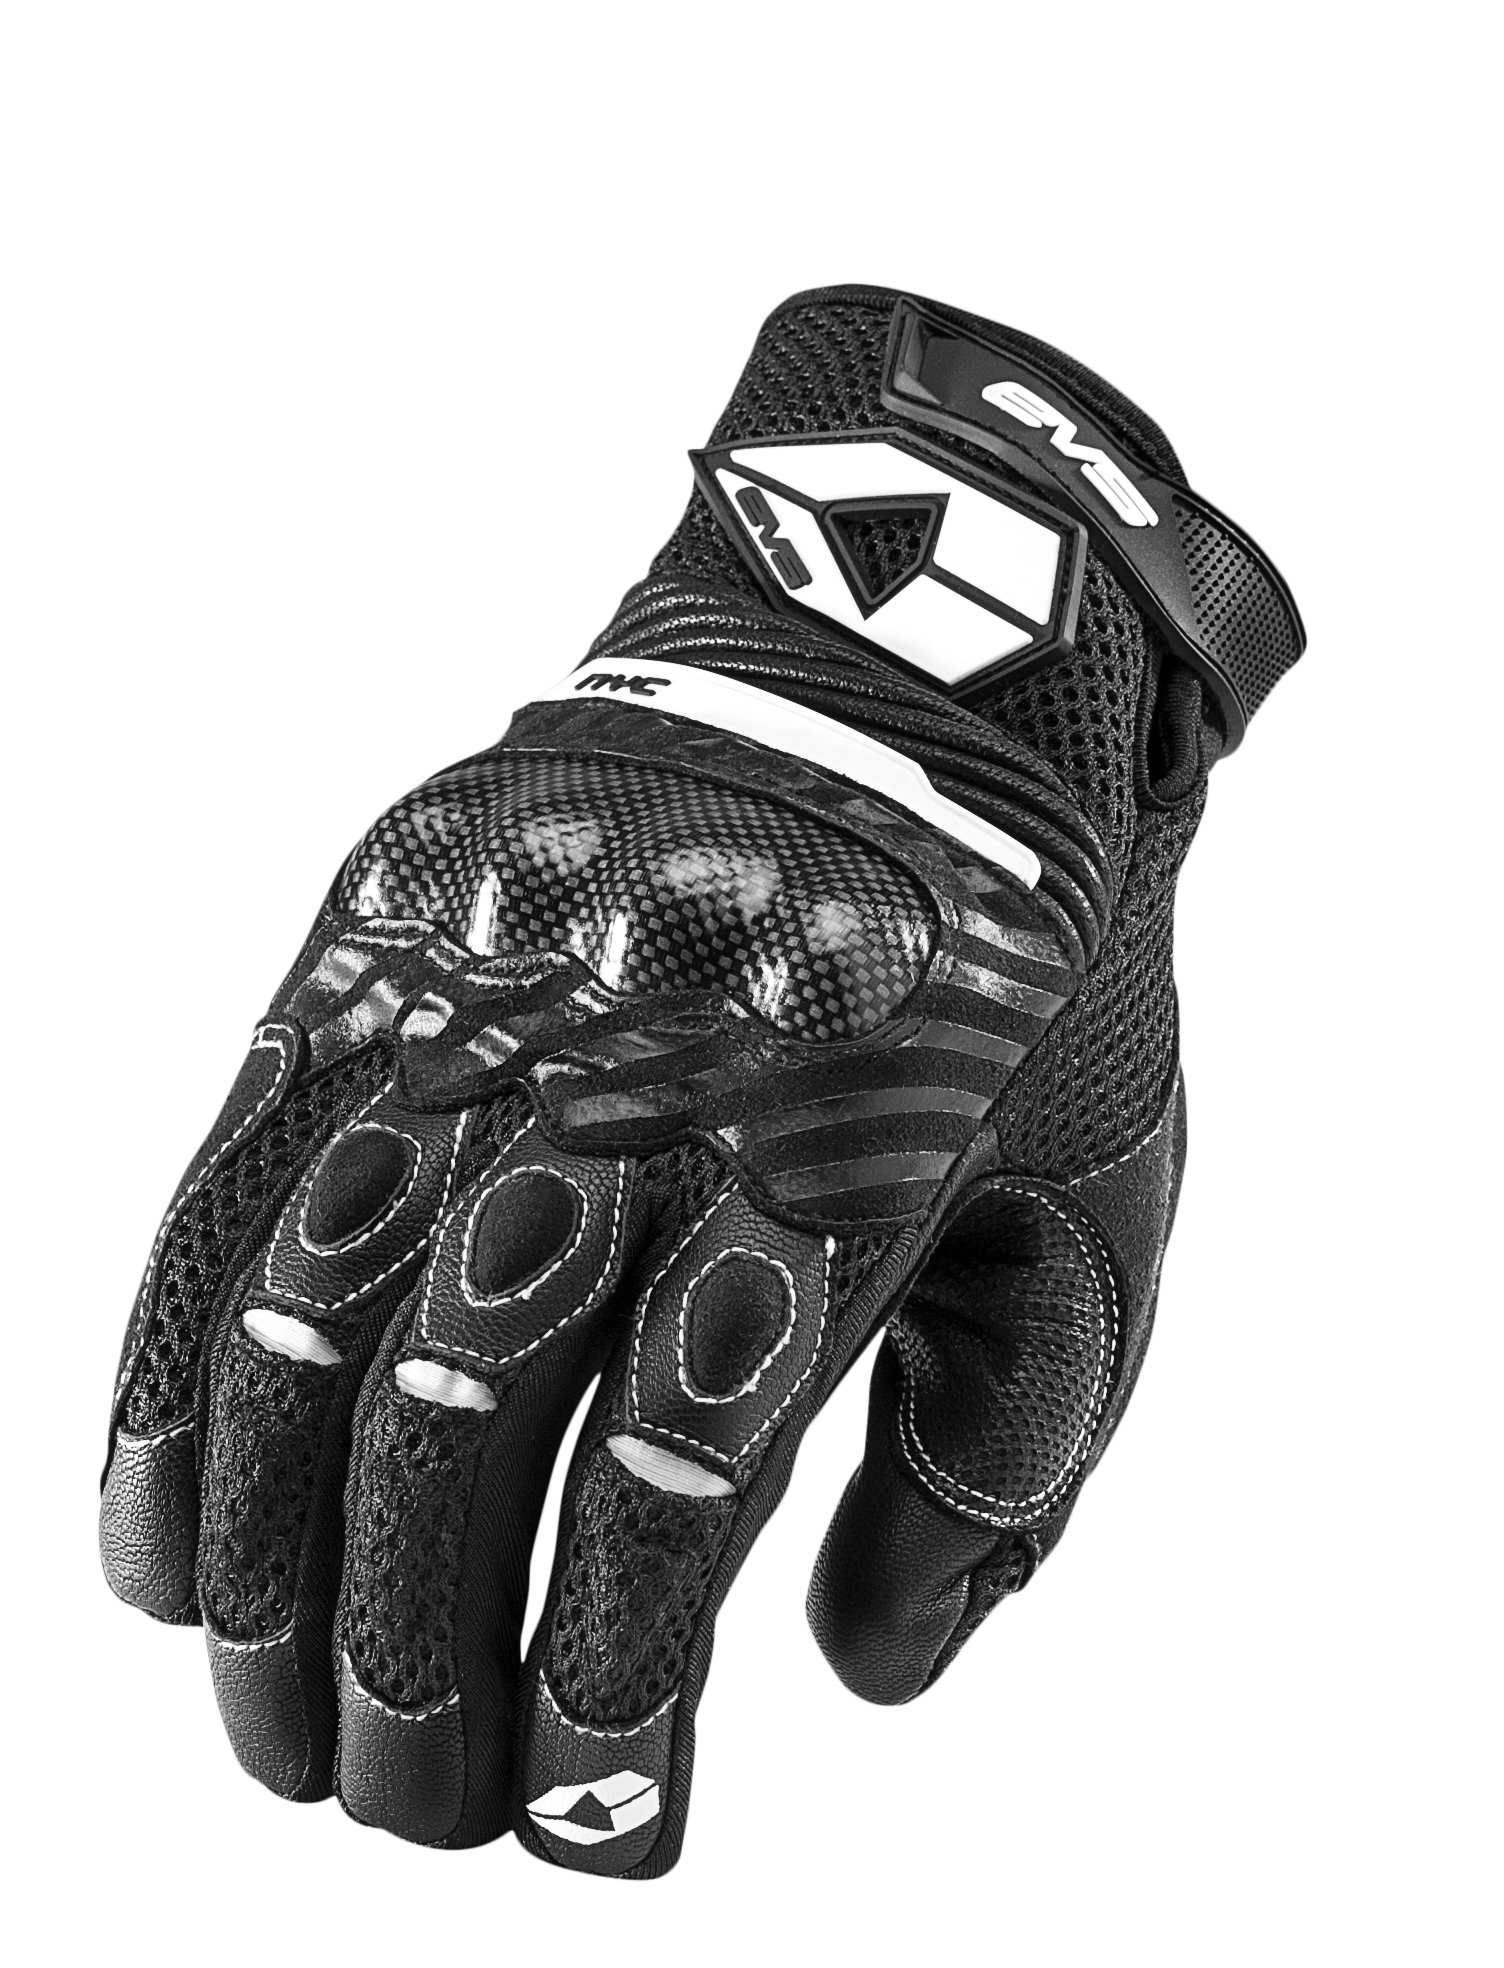 EVS Sports NYC Street Gloves (Black, Large)